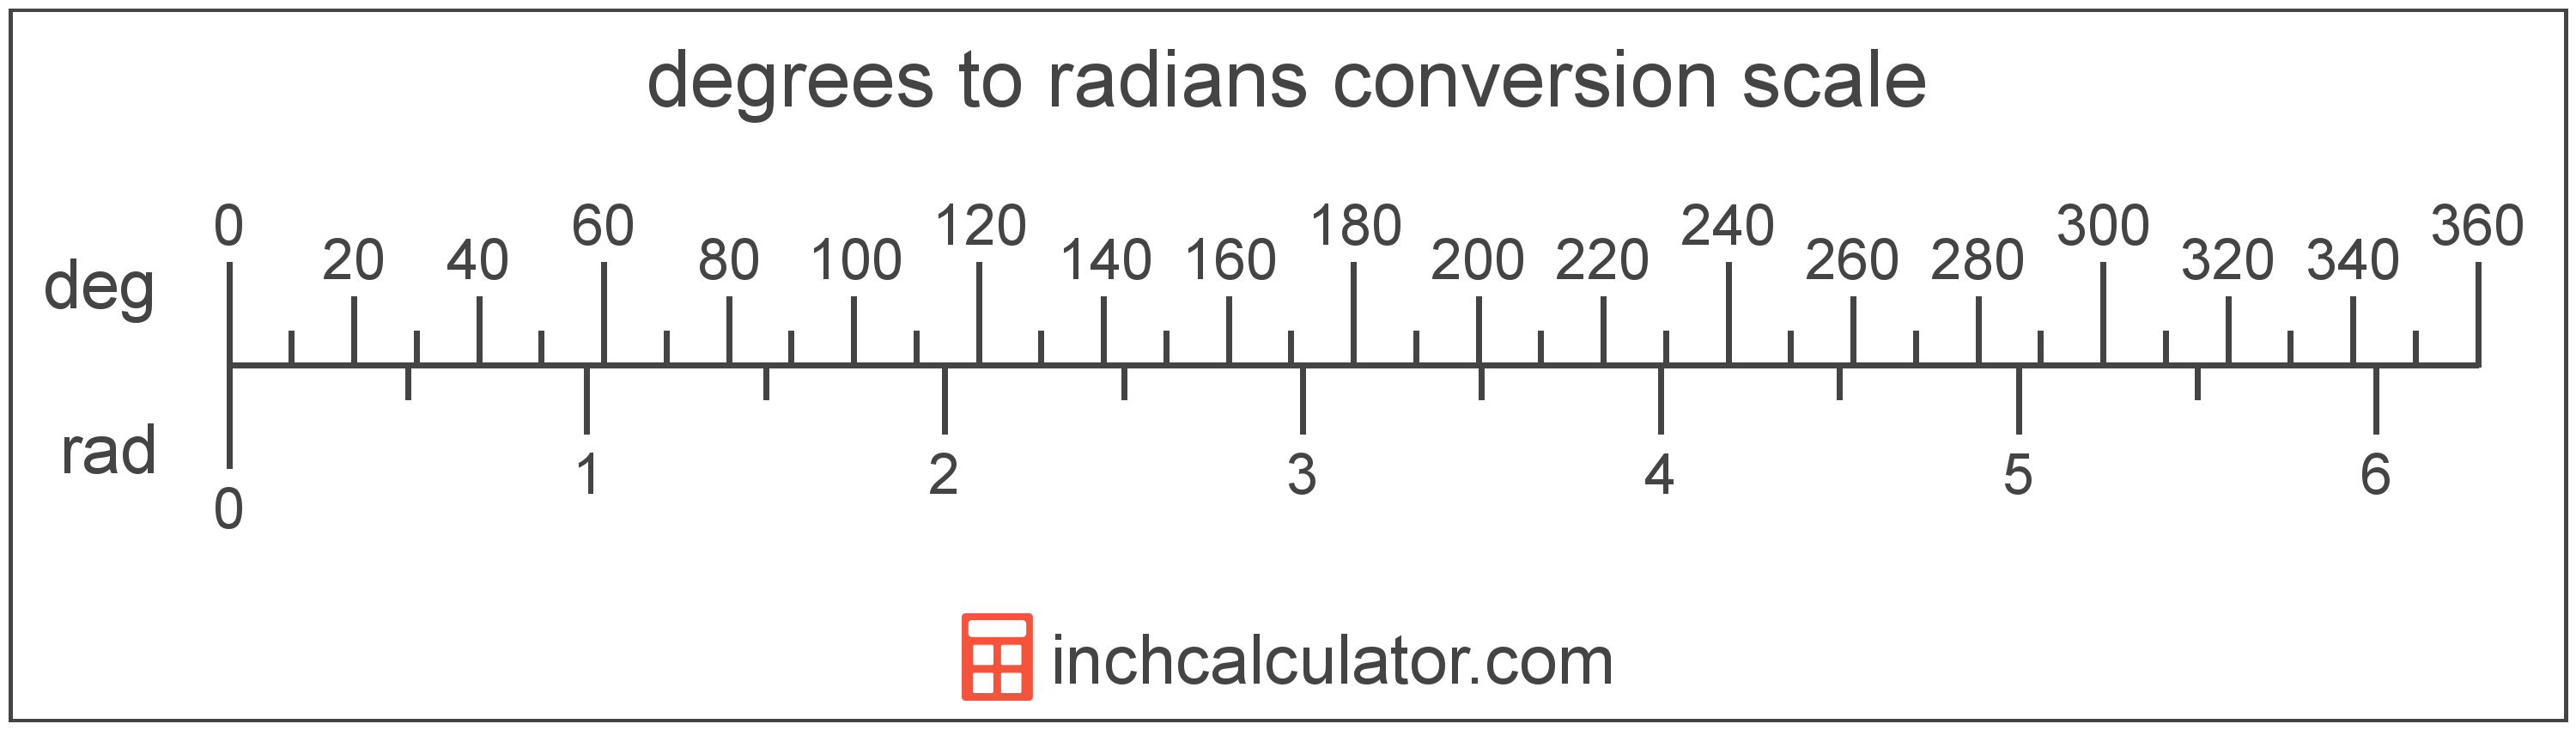 Convert Degrees to Radians - (° to rad) - Inch Calculator